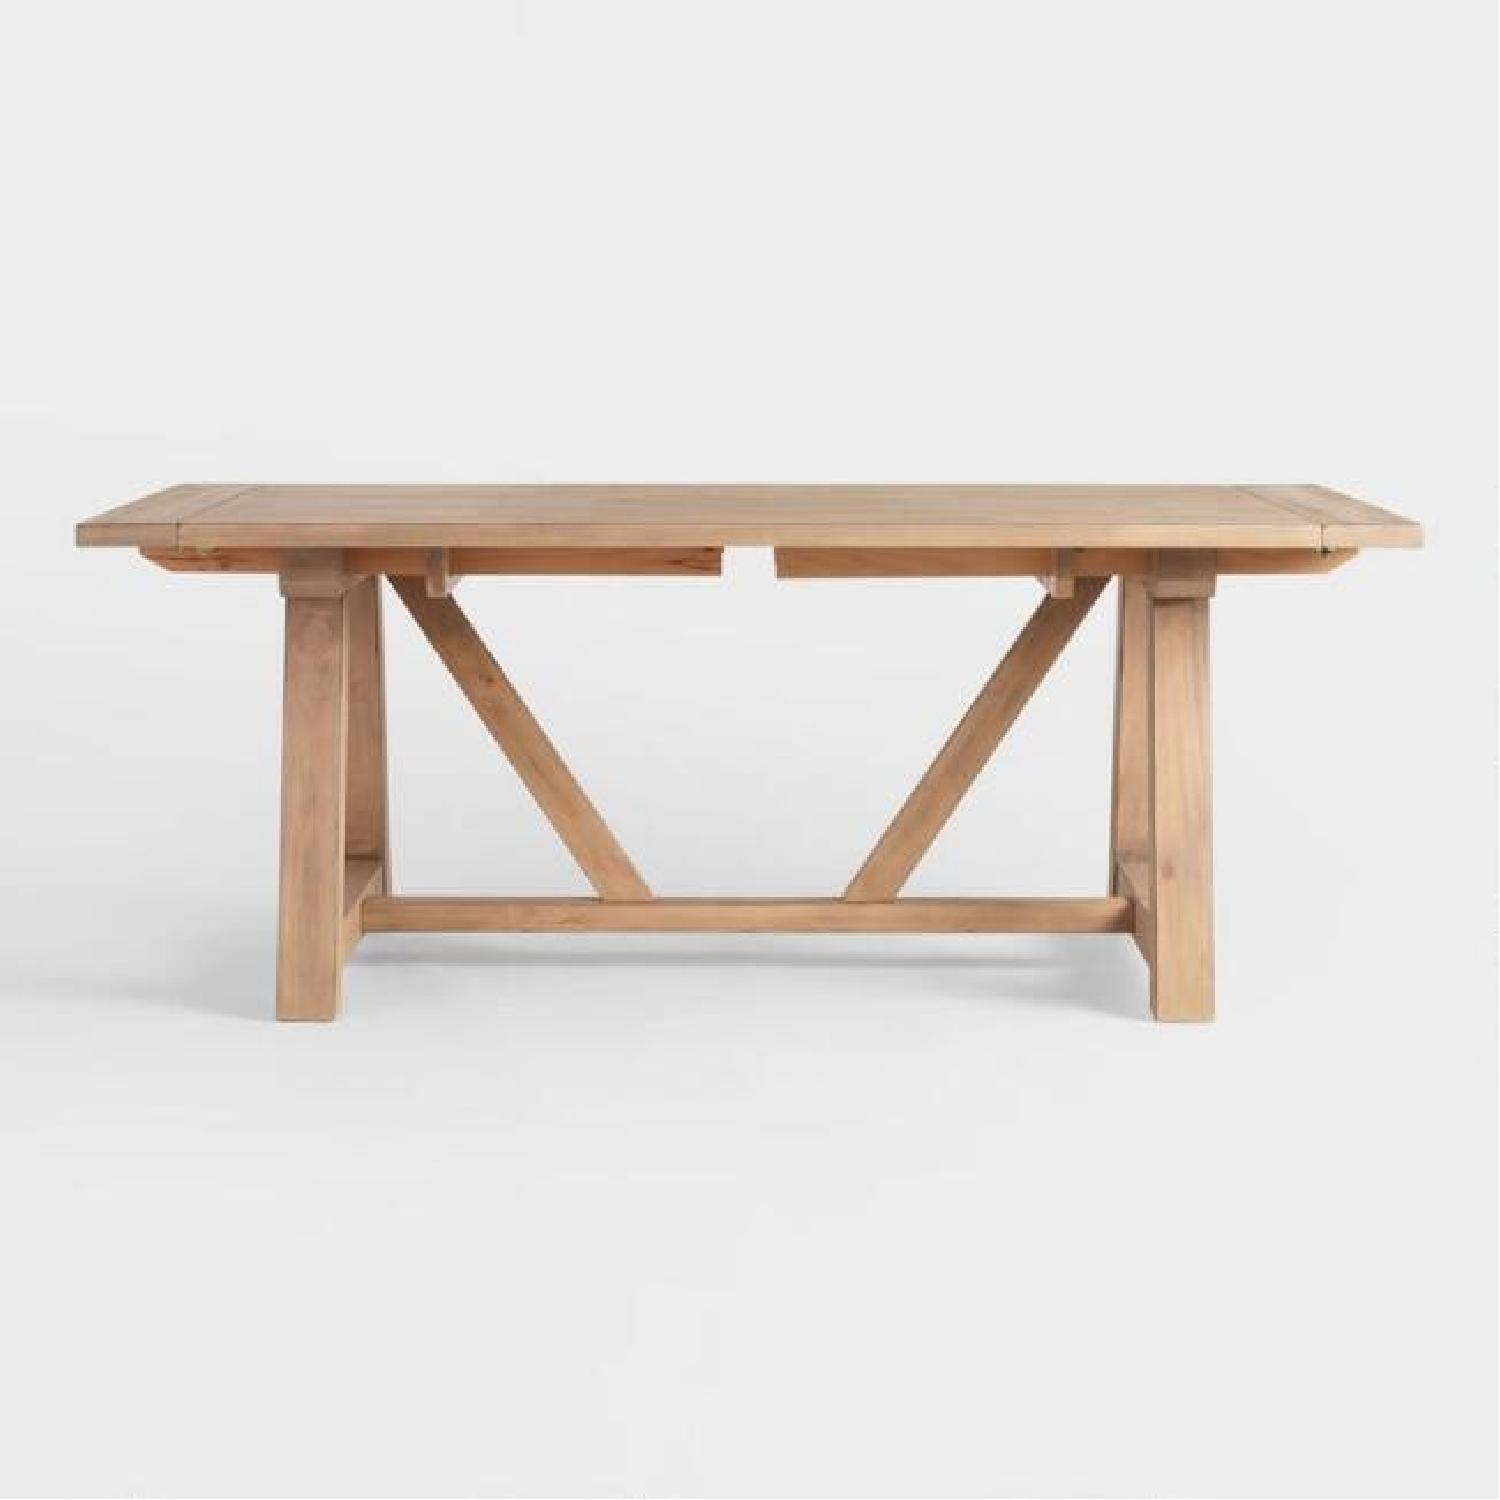 World Market Farmhouse Extension Dining Table - image-3